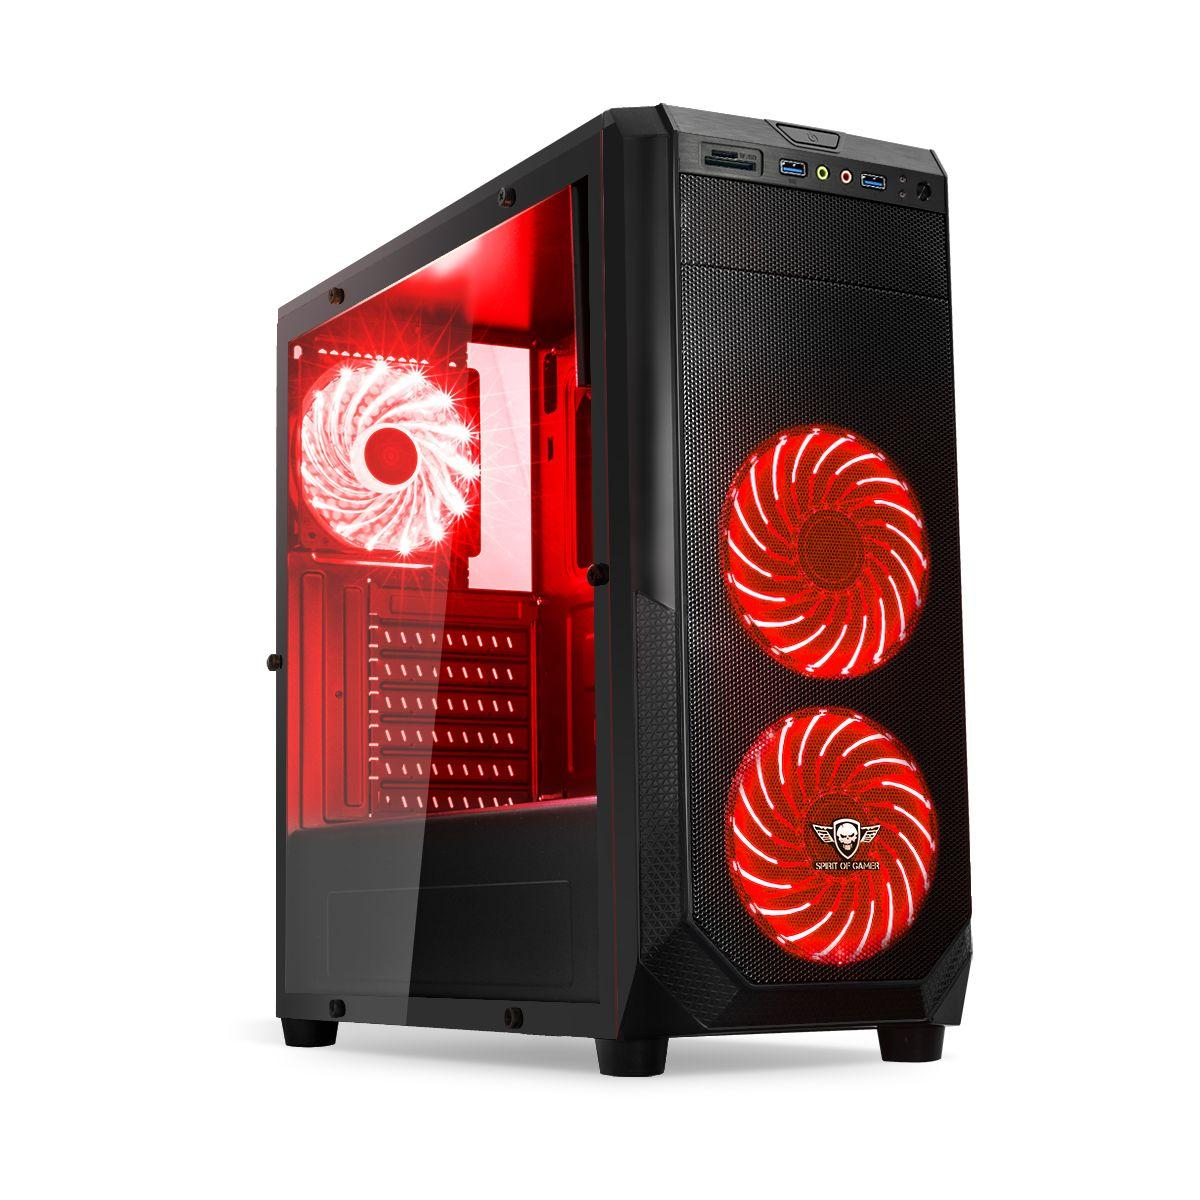 Boitier pc spirit of gamer pc rogue 1 rouge - 15% de remise imm�diate avec le code : fete15 (photo)